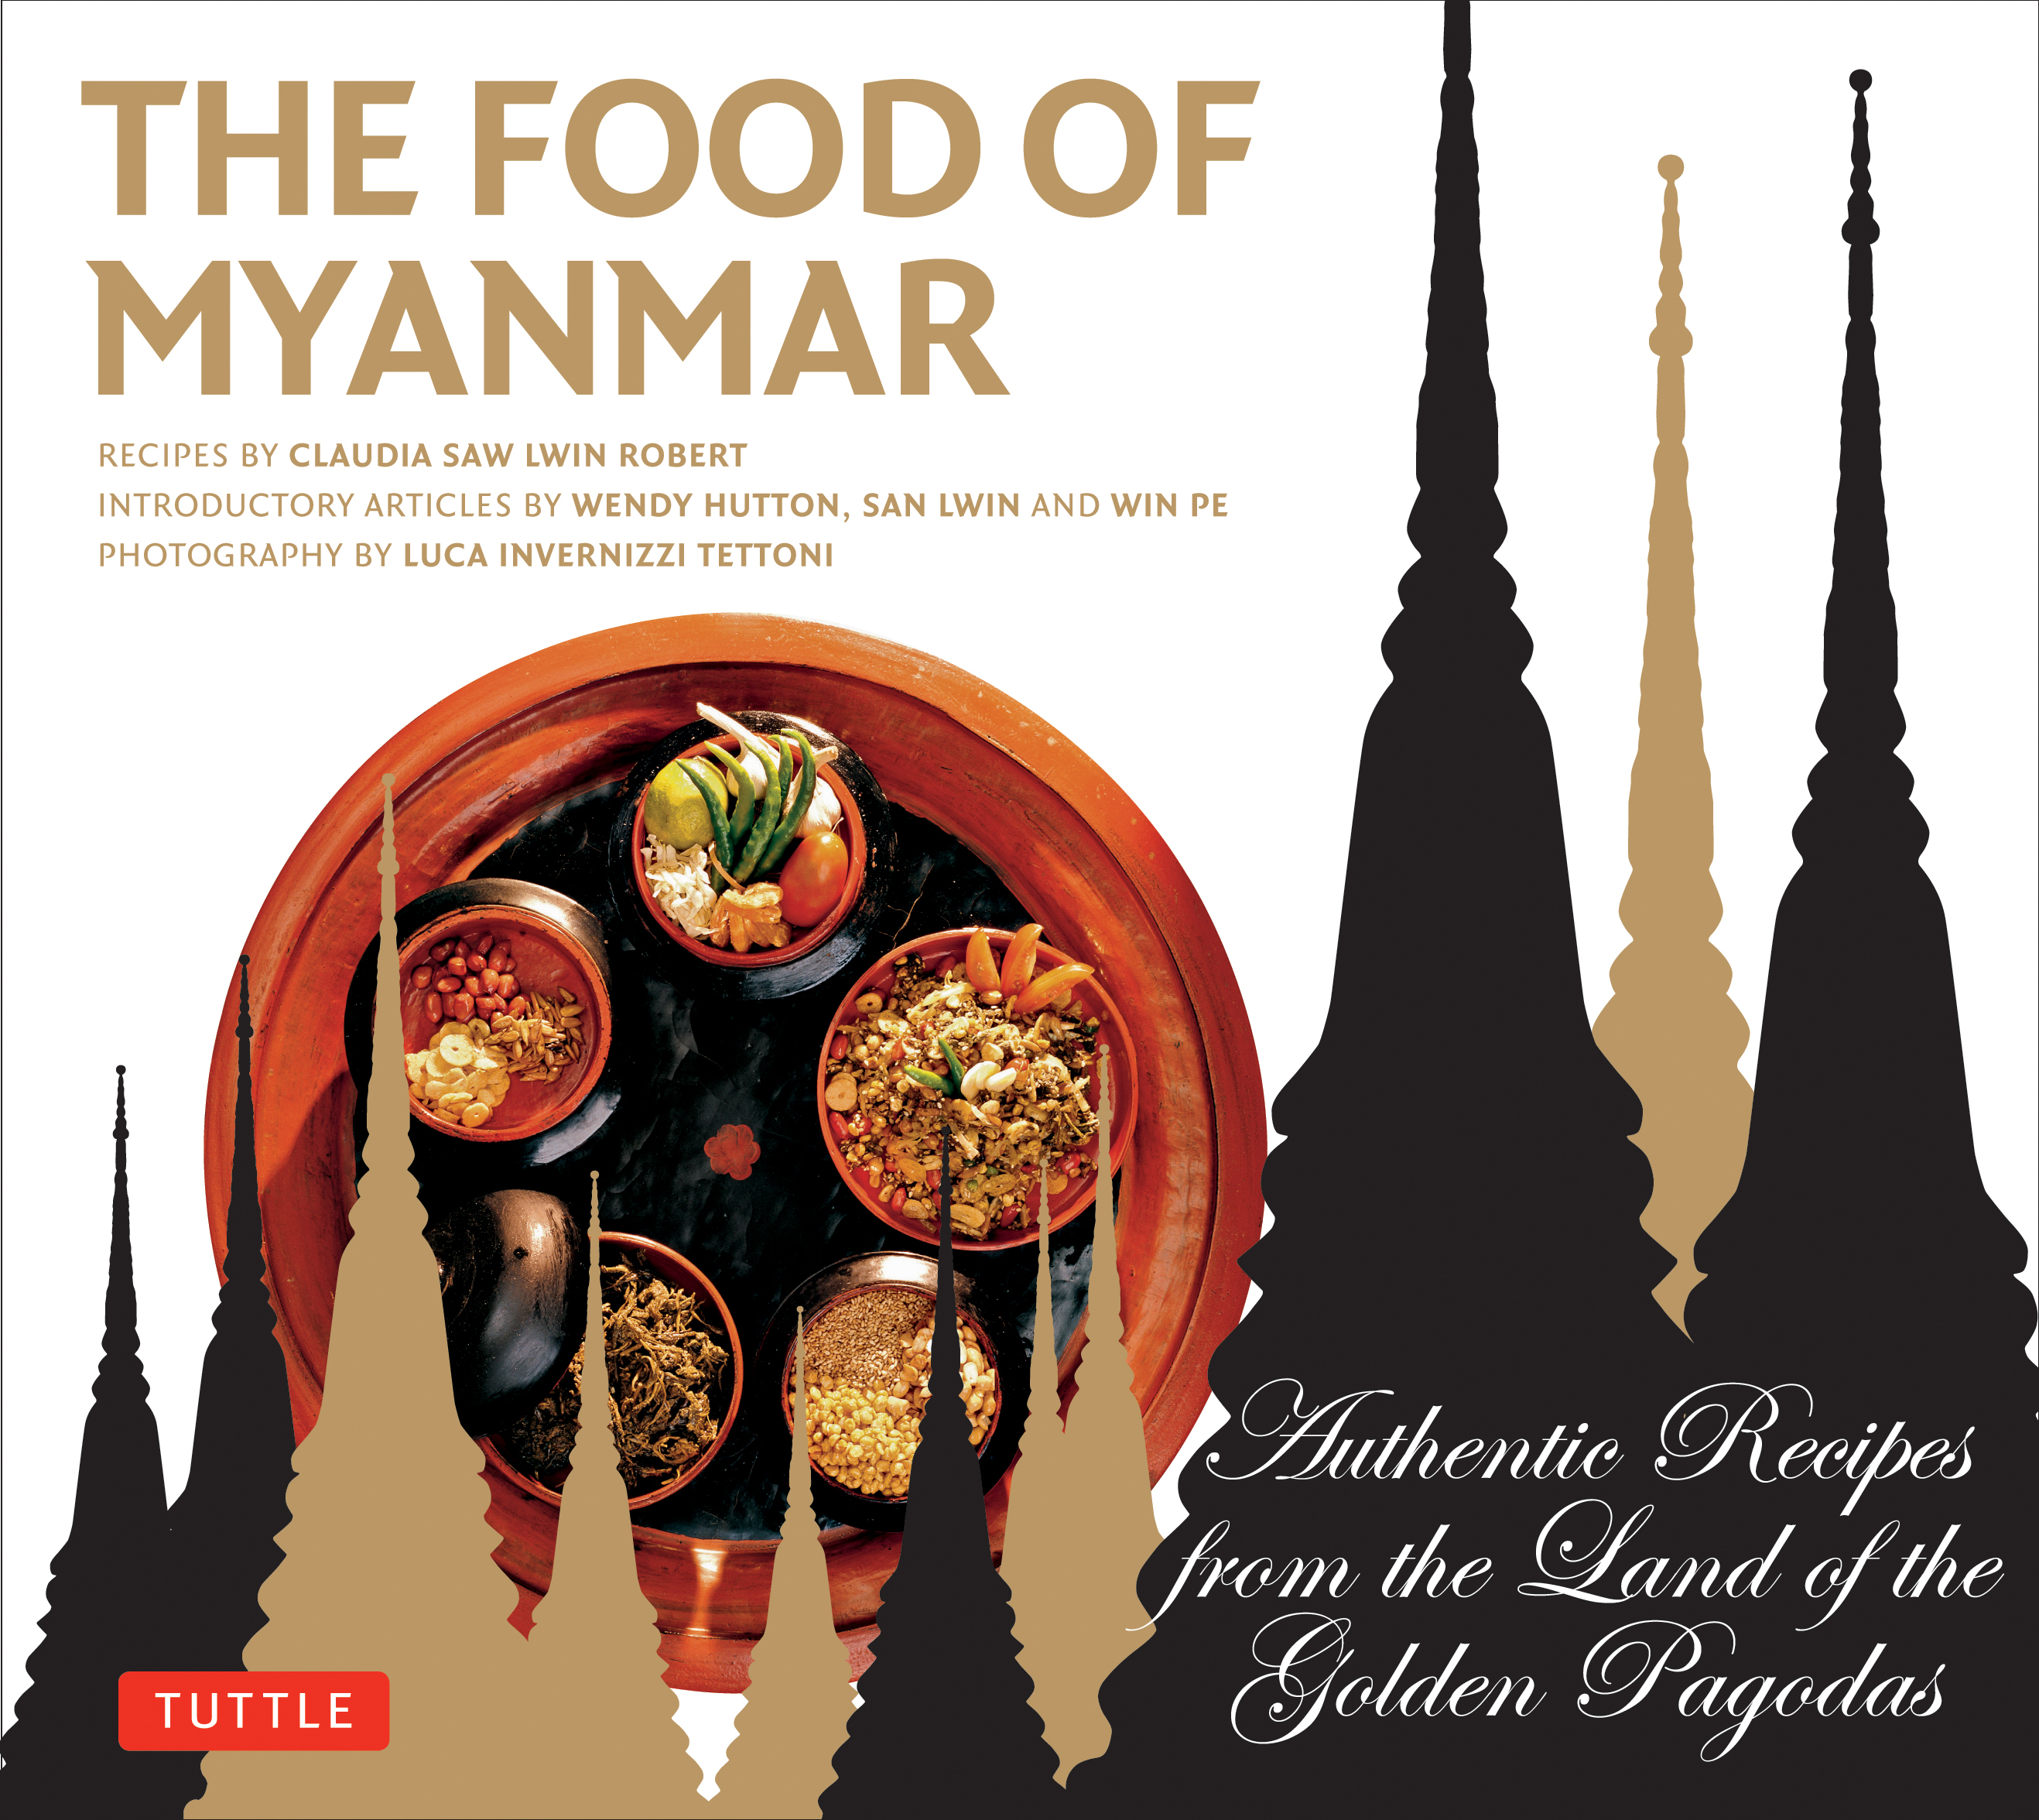 Food of myanmar 9780804844000 hr